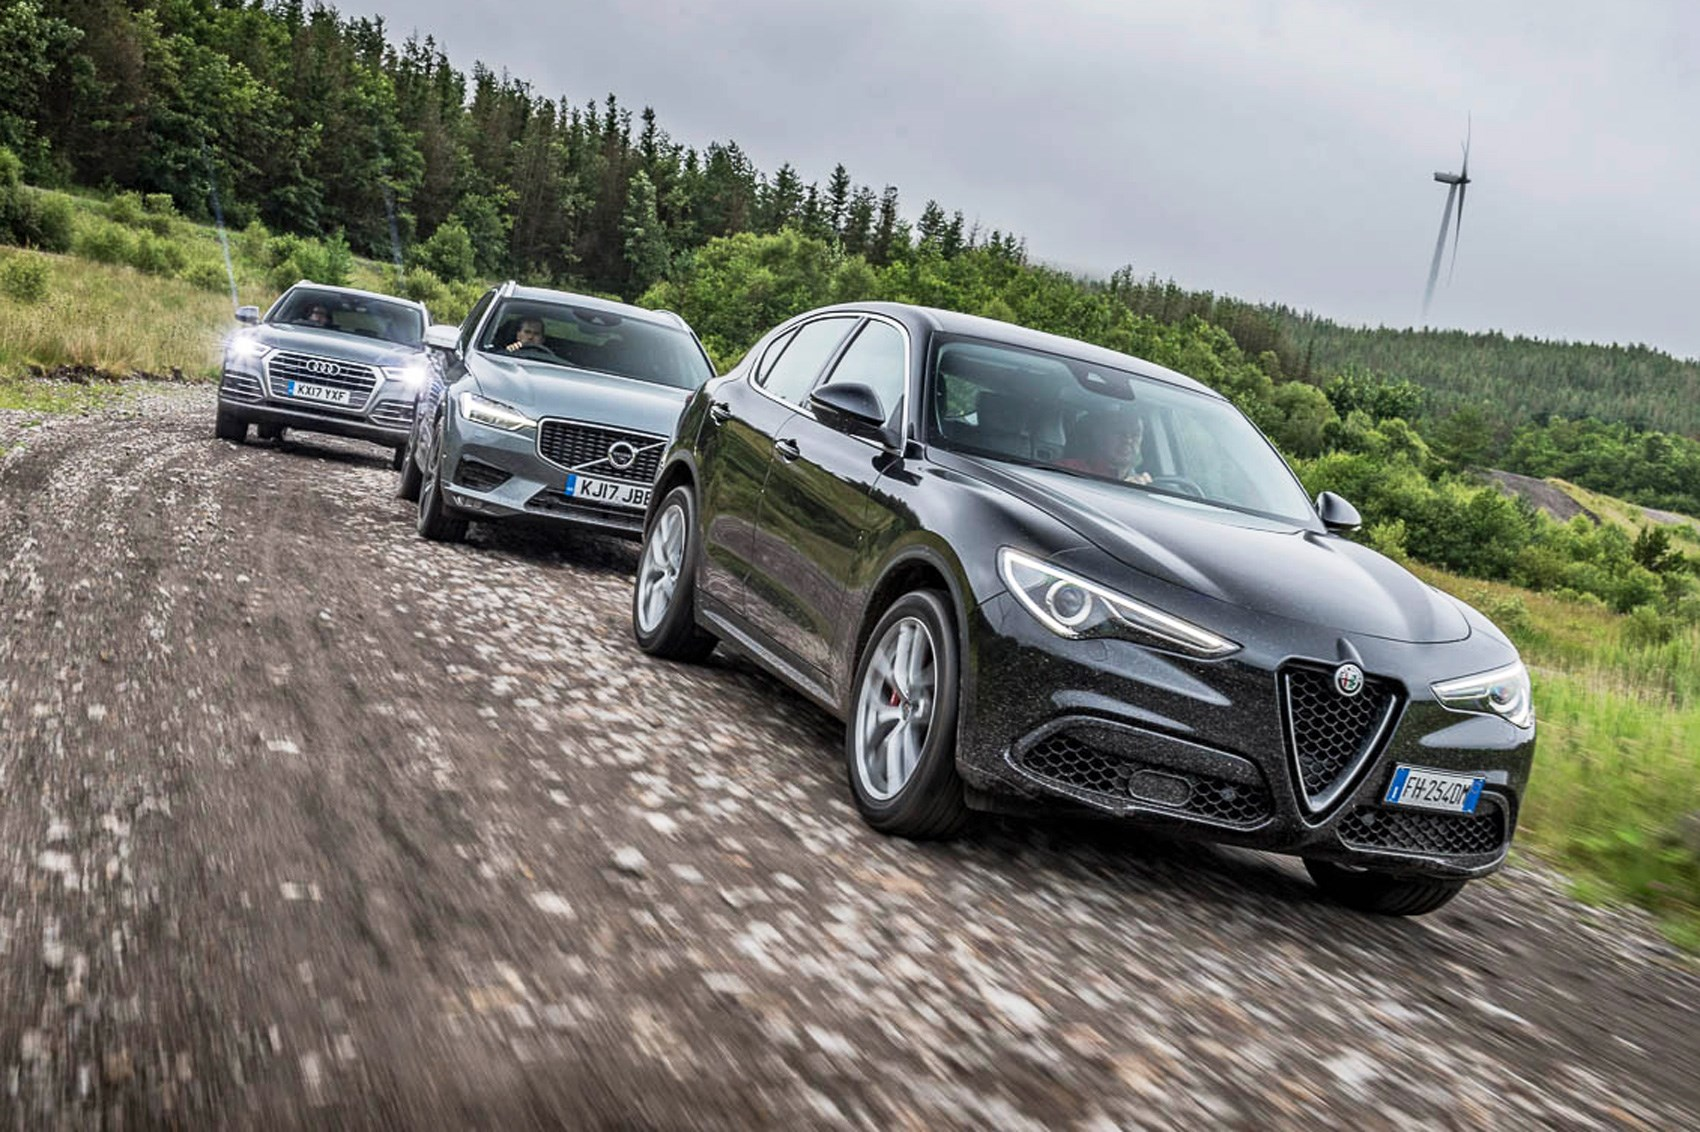 alfa romeo stelvio vs volvo xc60 vs audi q5 triple test review by car magazine. Black Bedroom Furniture Sets. Home Design Ideas